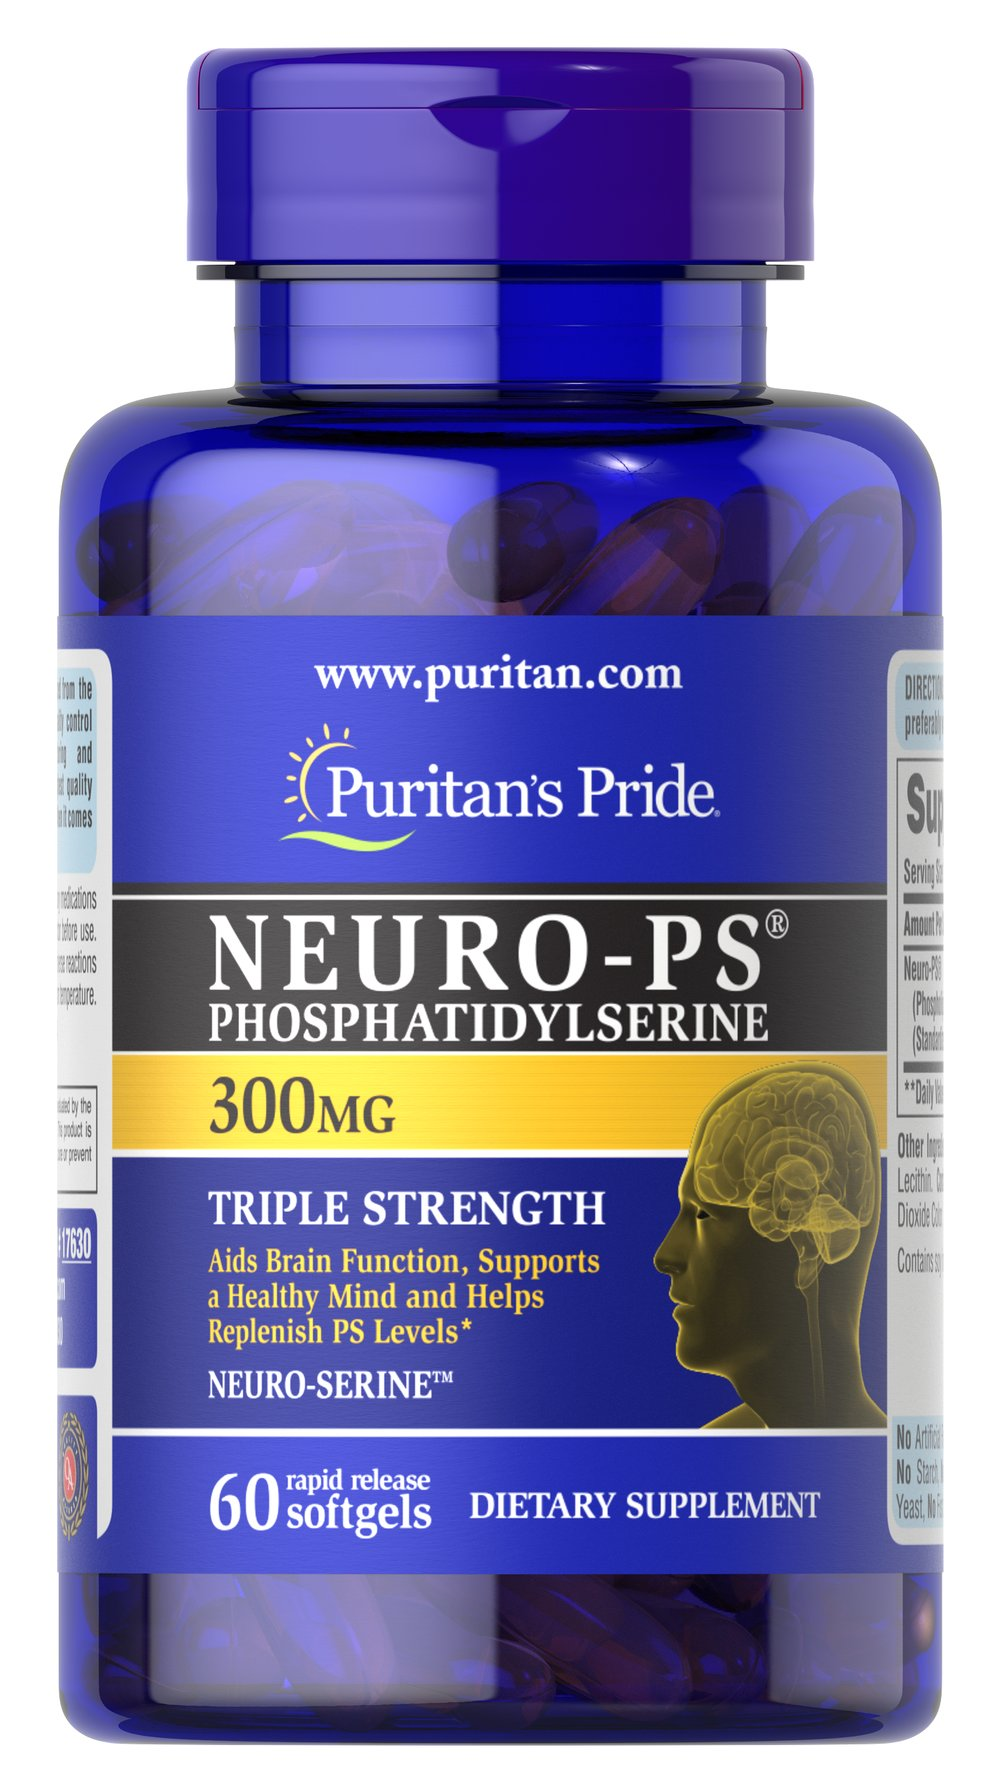 dieting the healthy way with Puritan's Pride Neuro-PS 300 mg (Phosphatidylserine)-60 Softgels improves brain function and weight loss by controlling cortisol